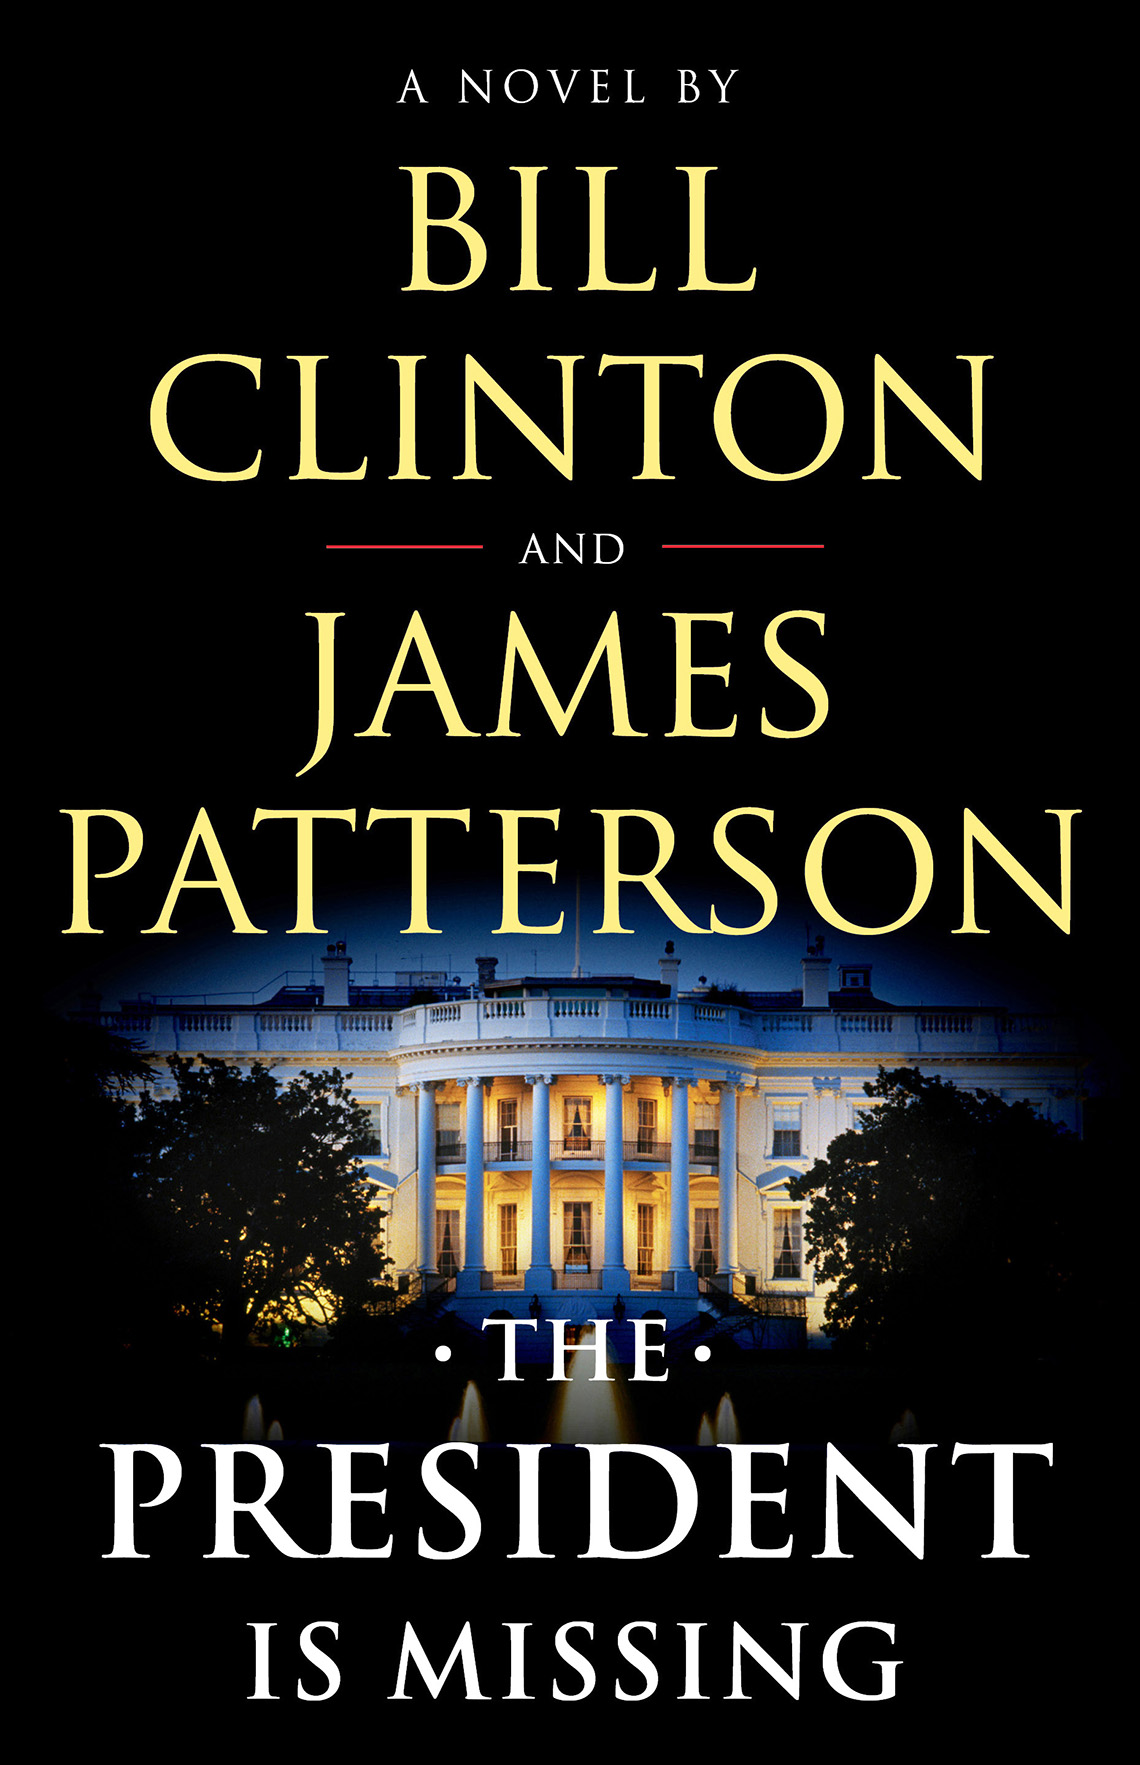 book cover, text reads: A Novel By Bill Clinton and James Patterson, The President is Missing